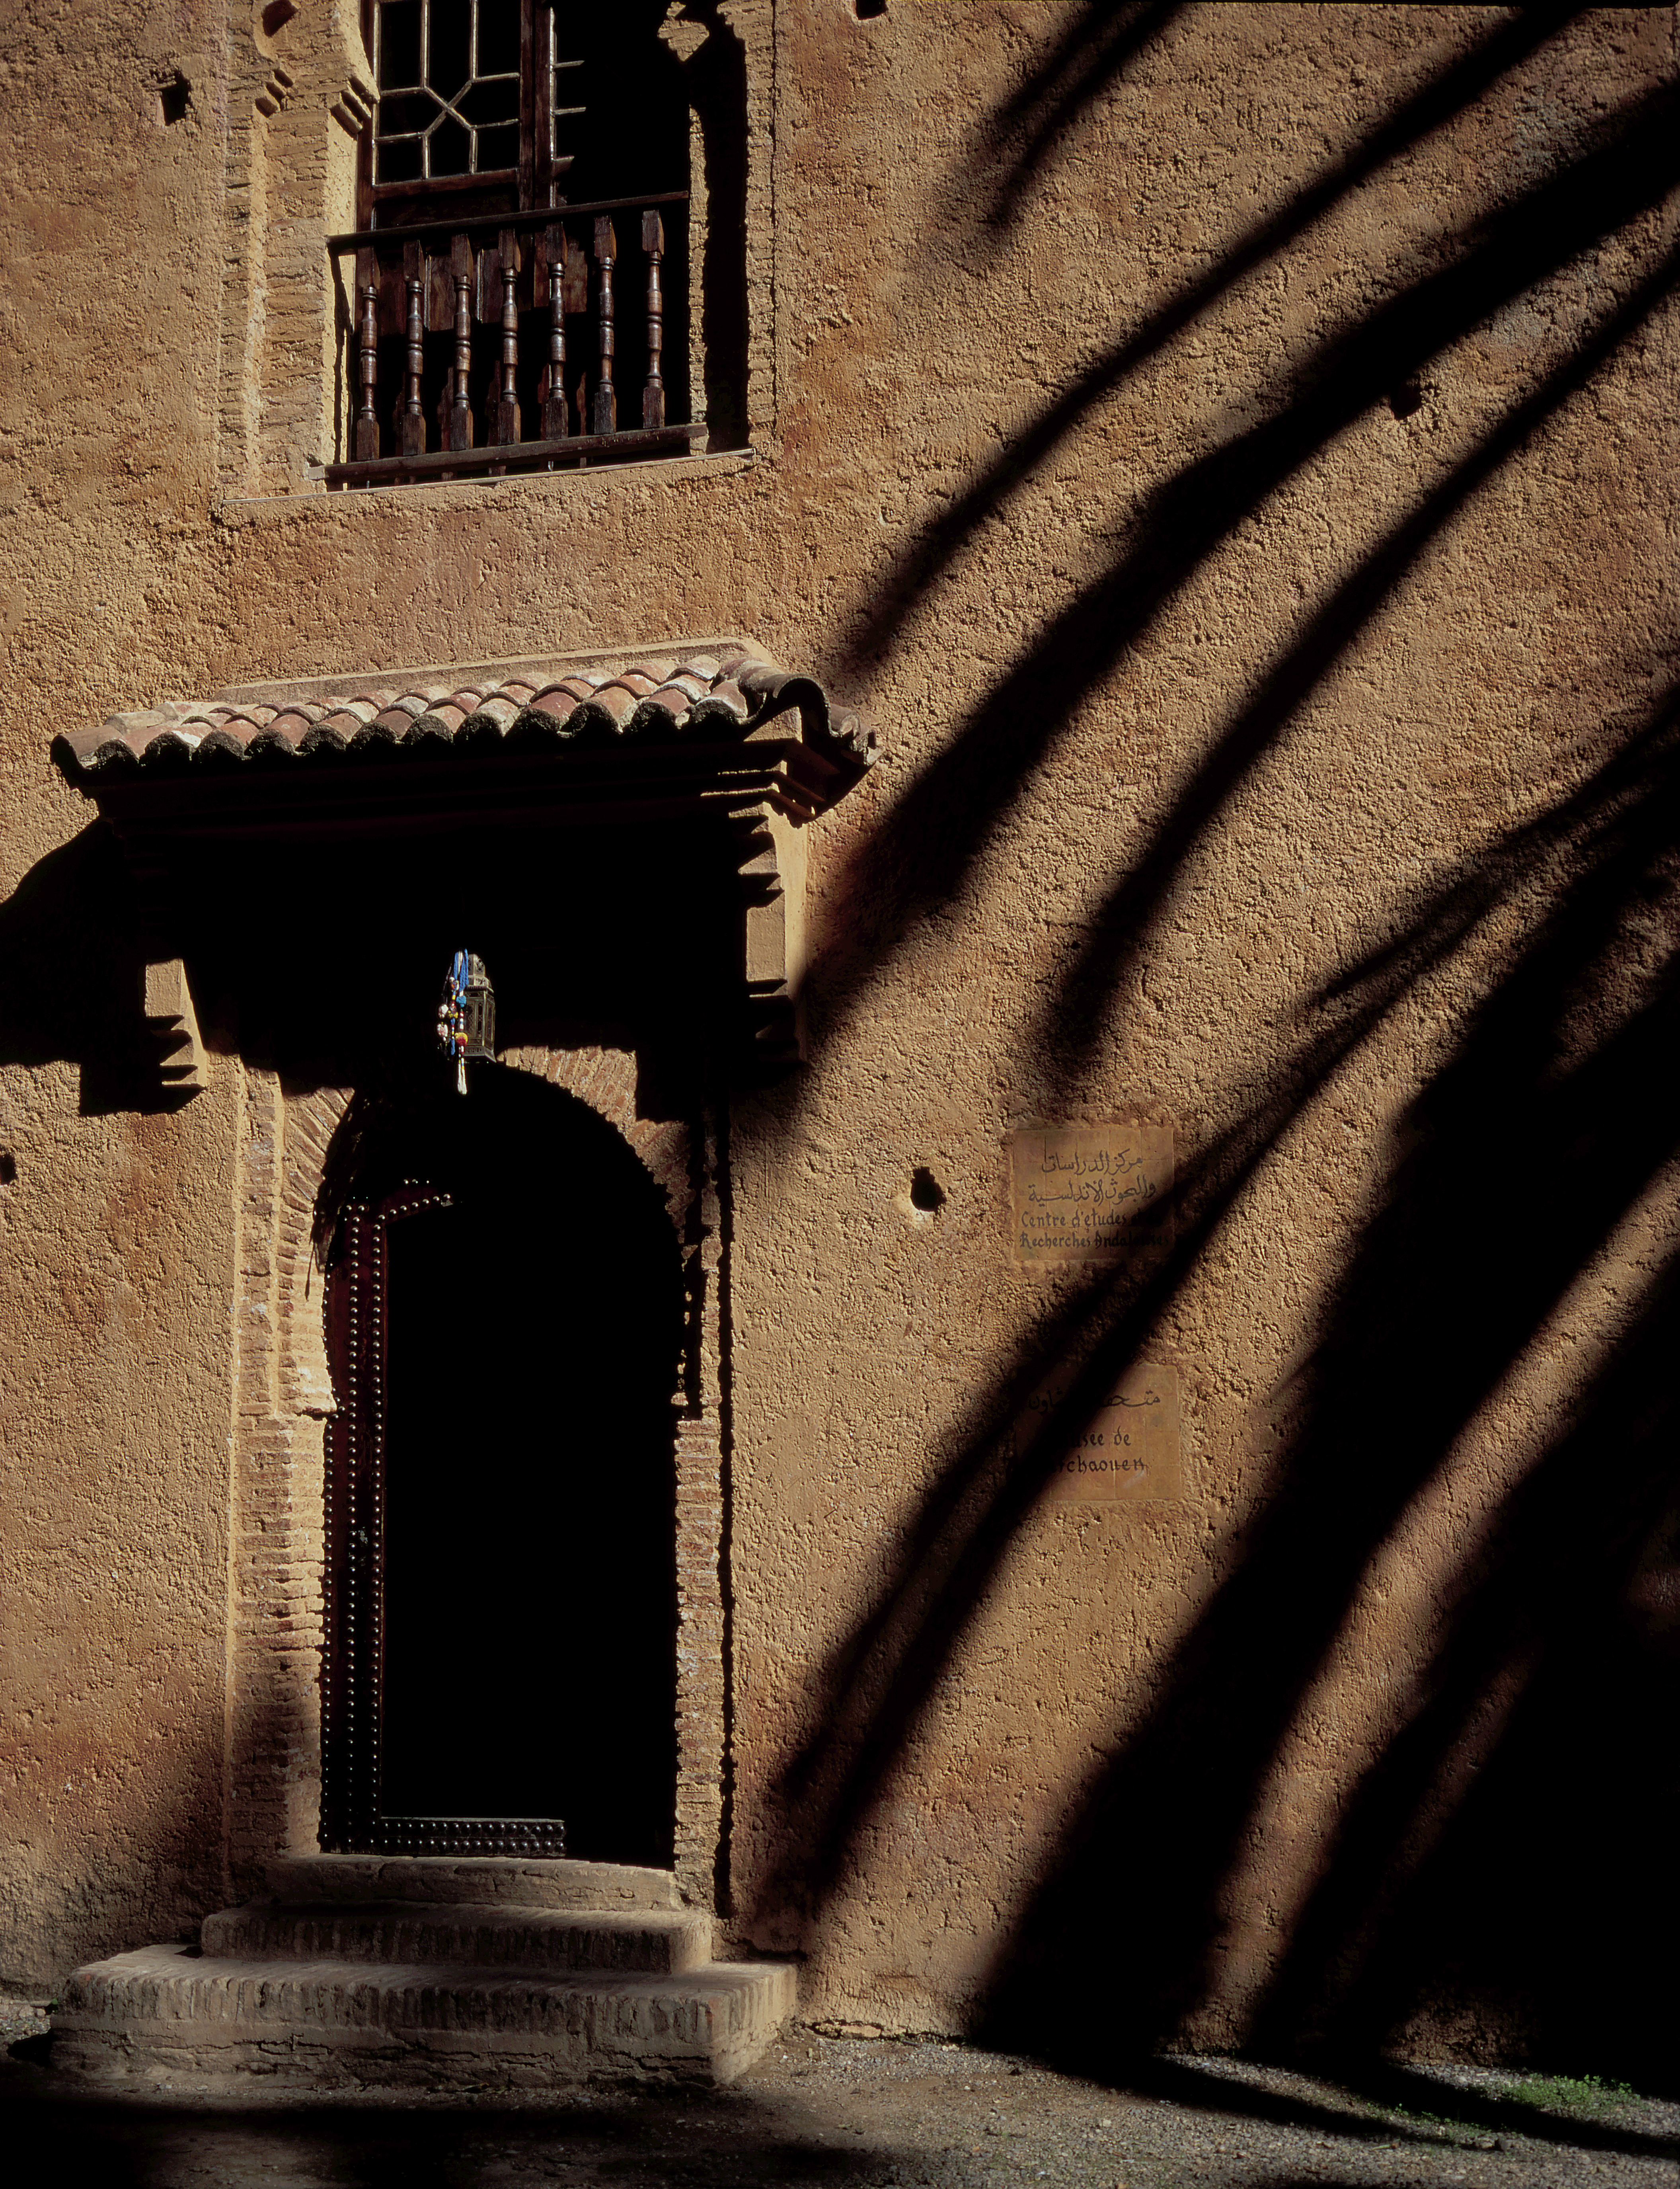 Moroccan shadow and texture